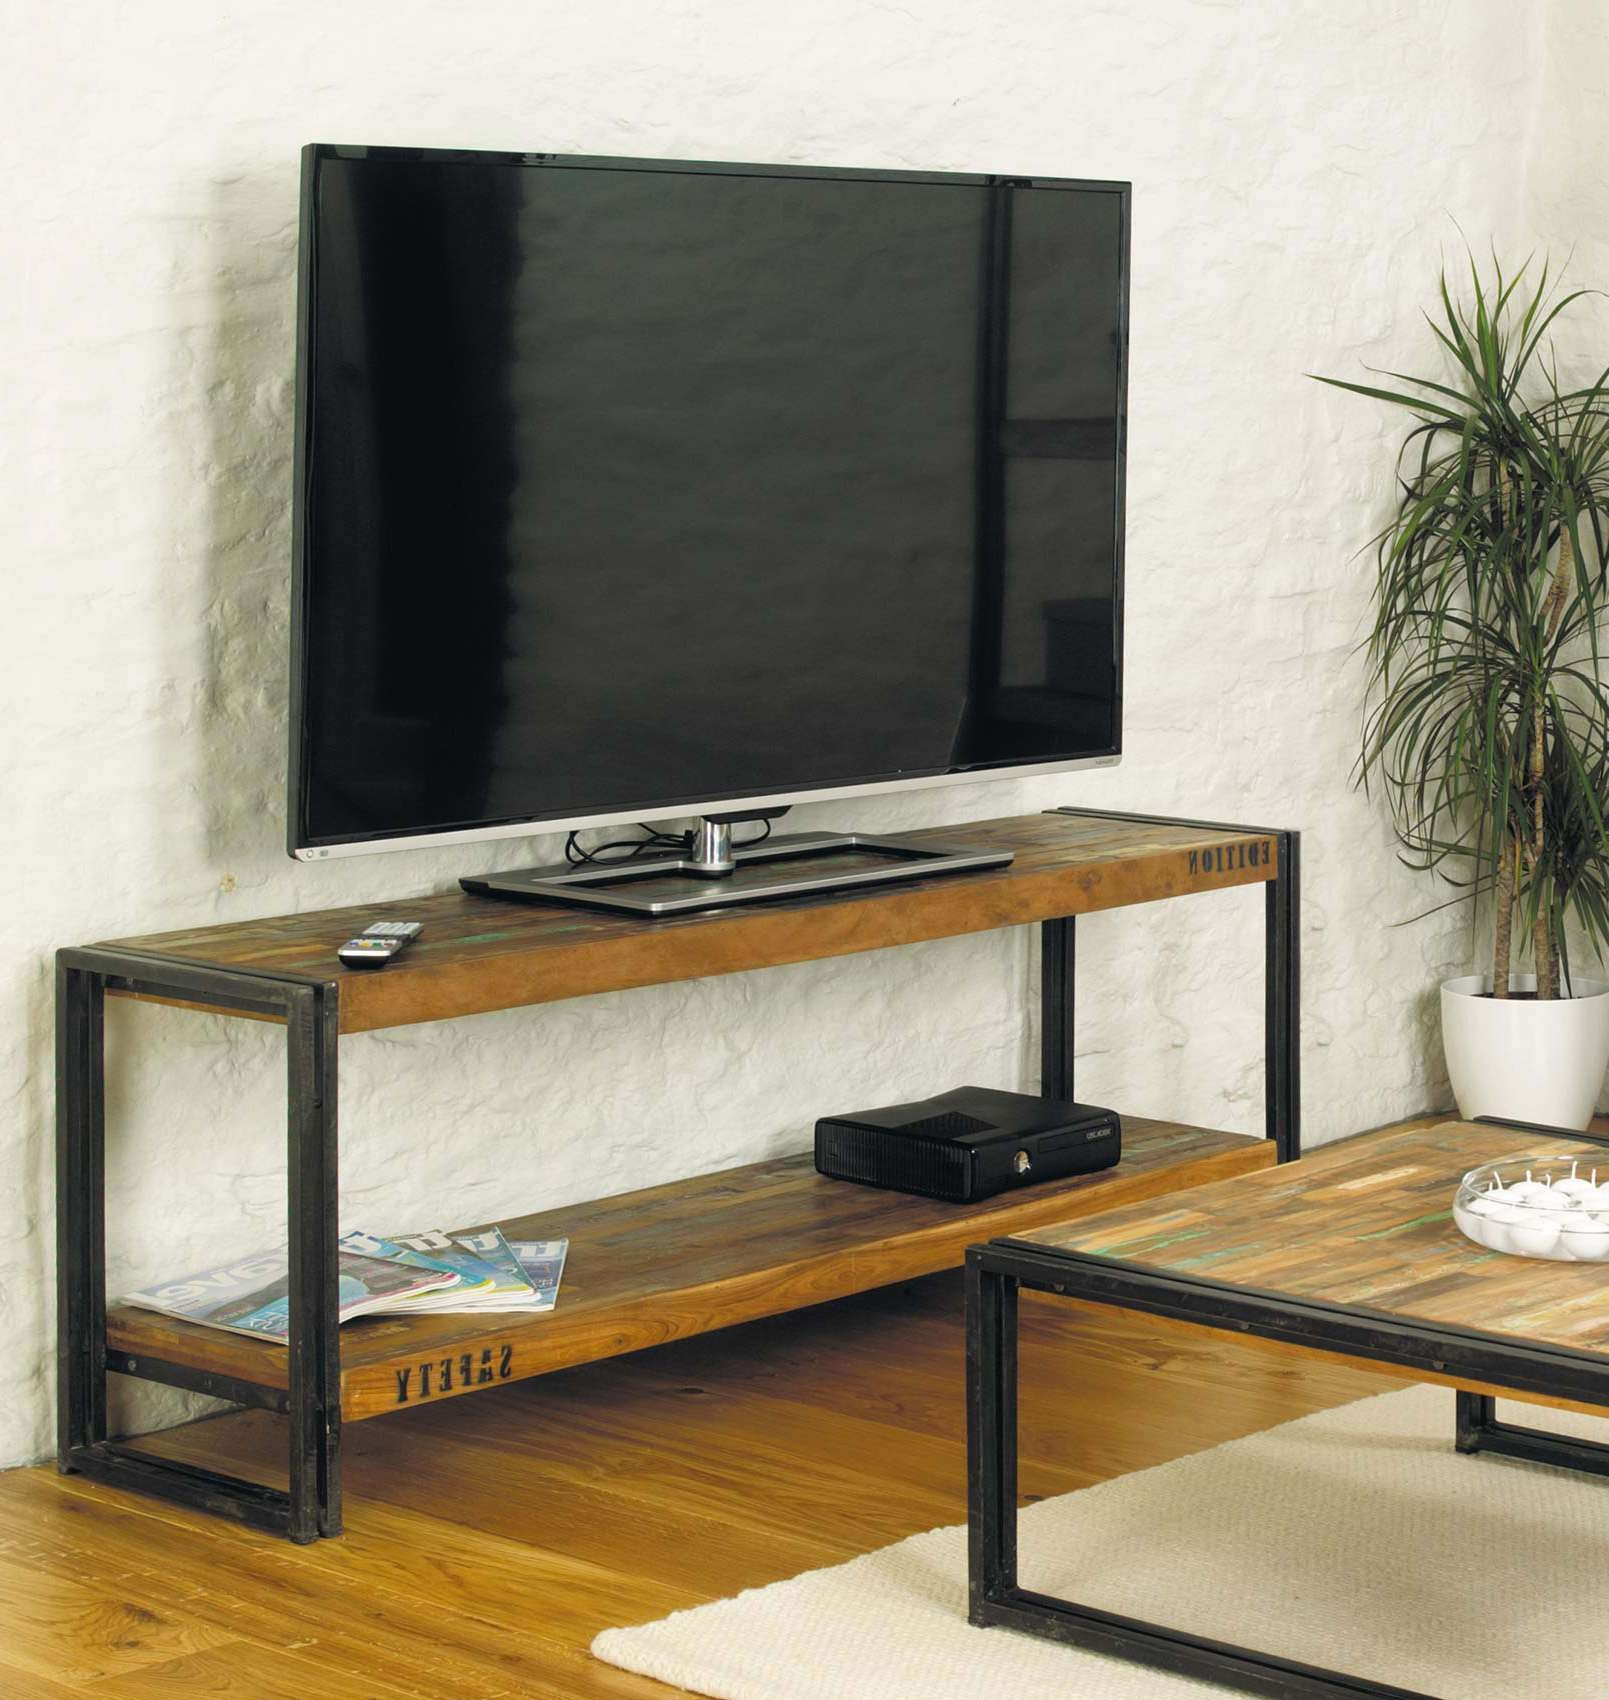 Industrial Media Cabinet Rack Tv Stand With Metal Legs And Throughout Reclaimed Wood And Metal Tv Stands (View 8 of 15)